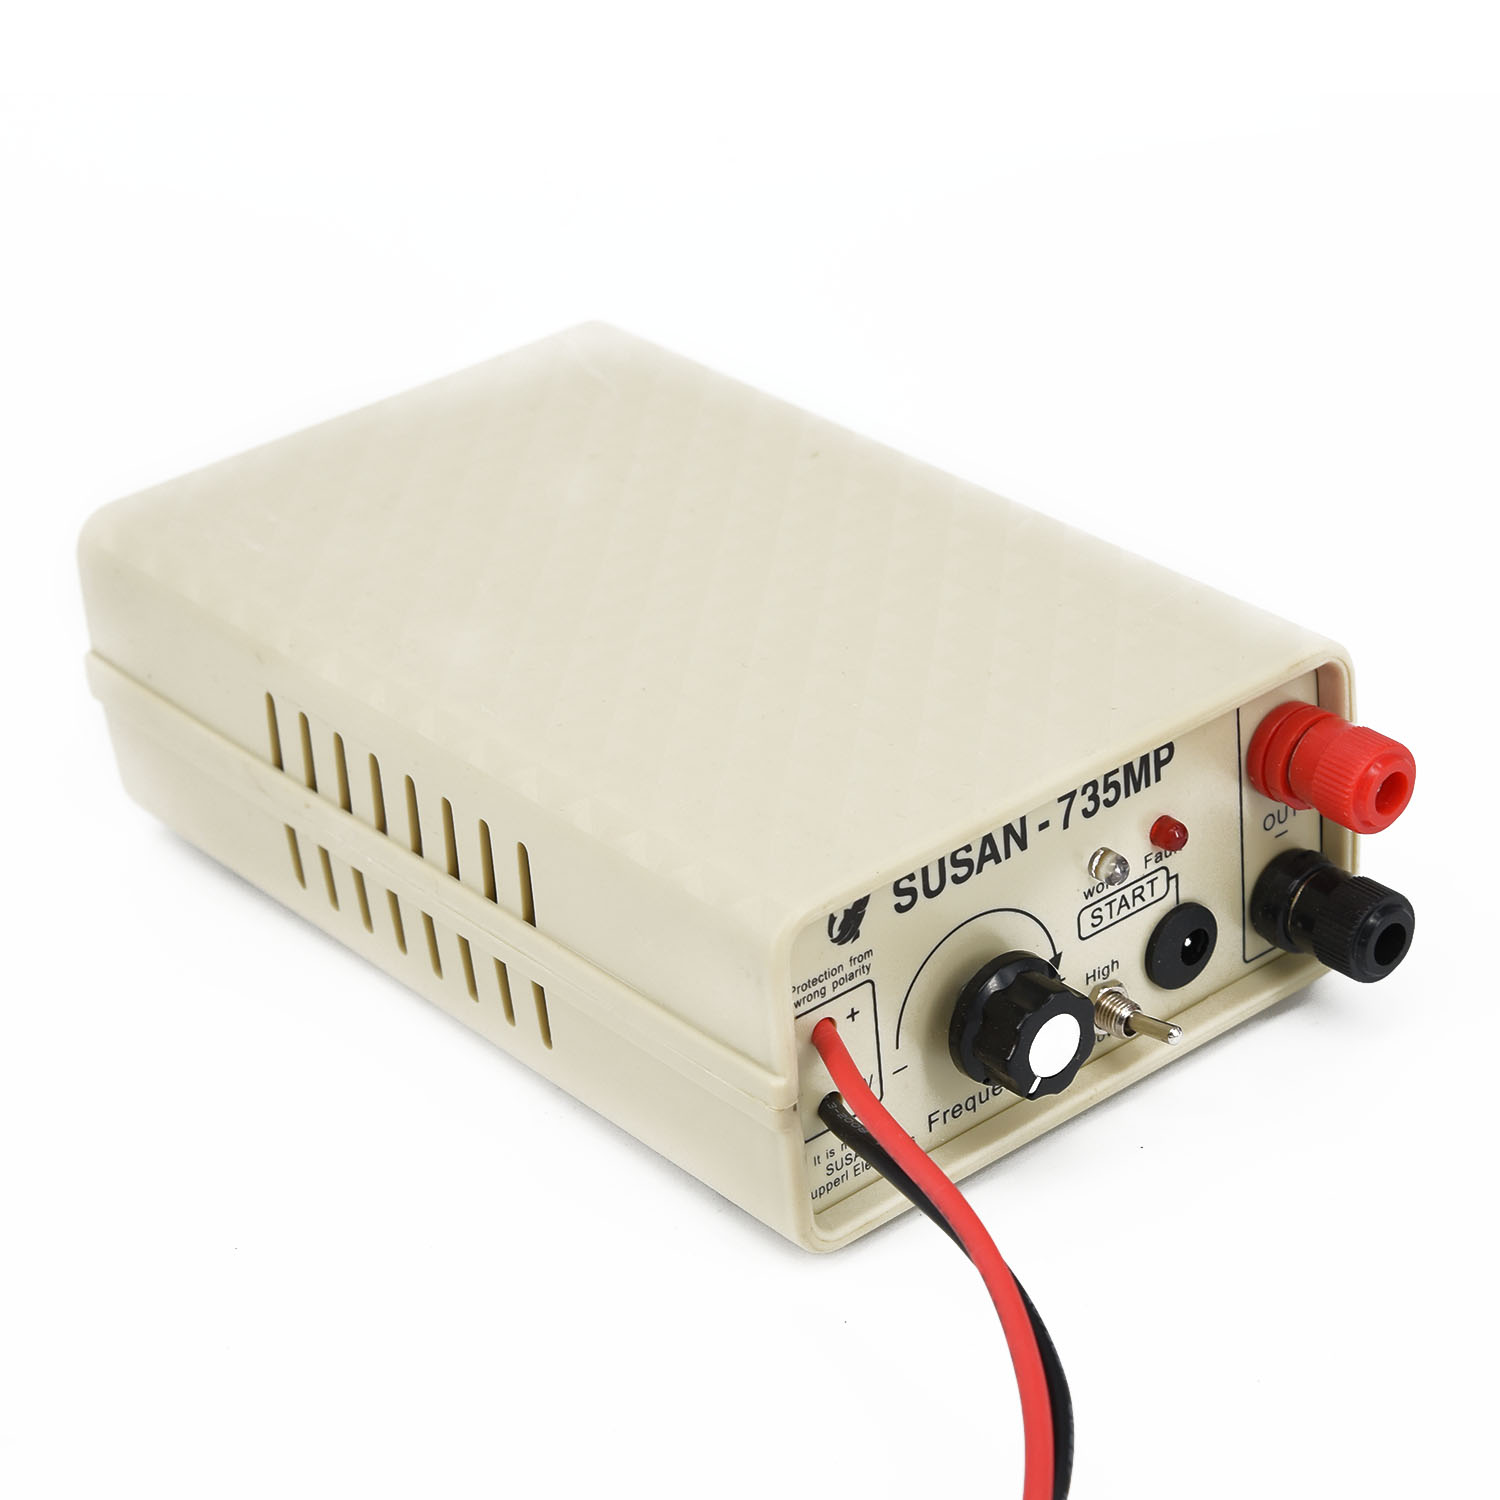 12V DC 735MP 600W High Power Ultrasonic Inverter Electrical Equipment Power Inverter With Cooling Fan Machine